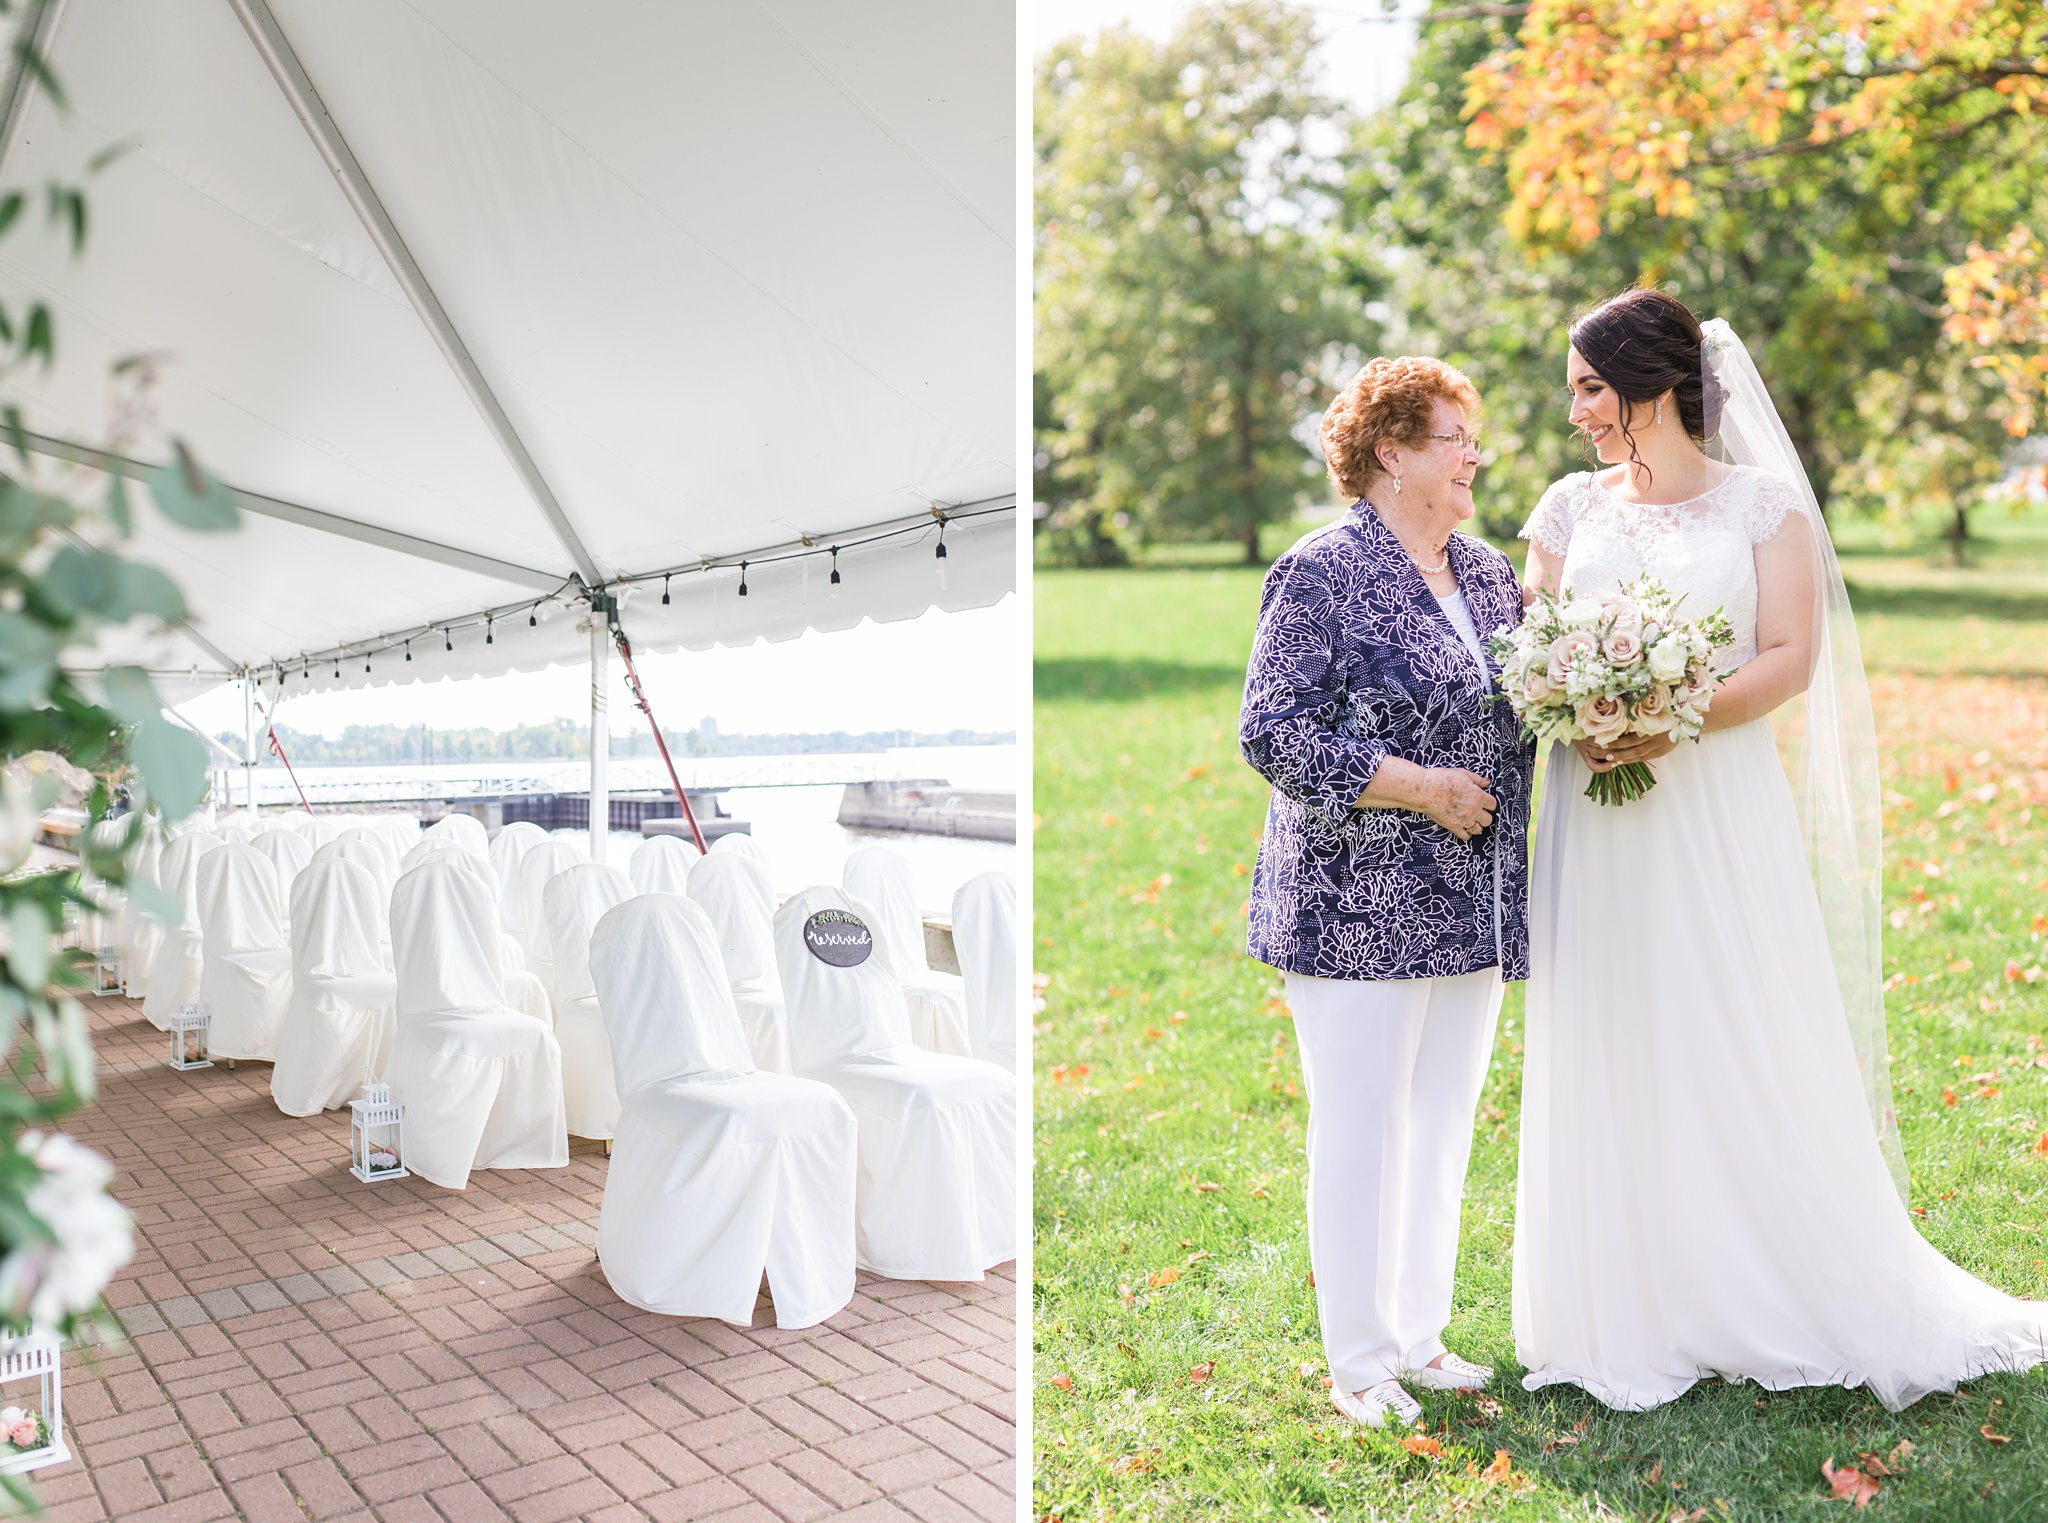 Chair covers in outdoor ceremony under tent, Britannia Yacht Club Wedding Photos, Amy Pinder Photography